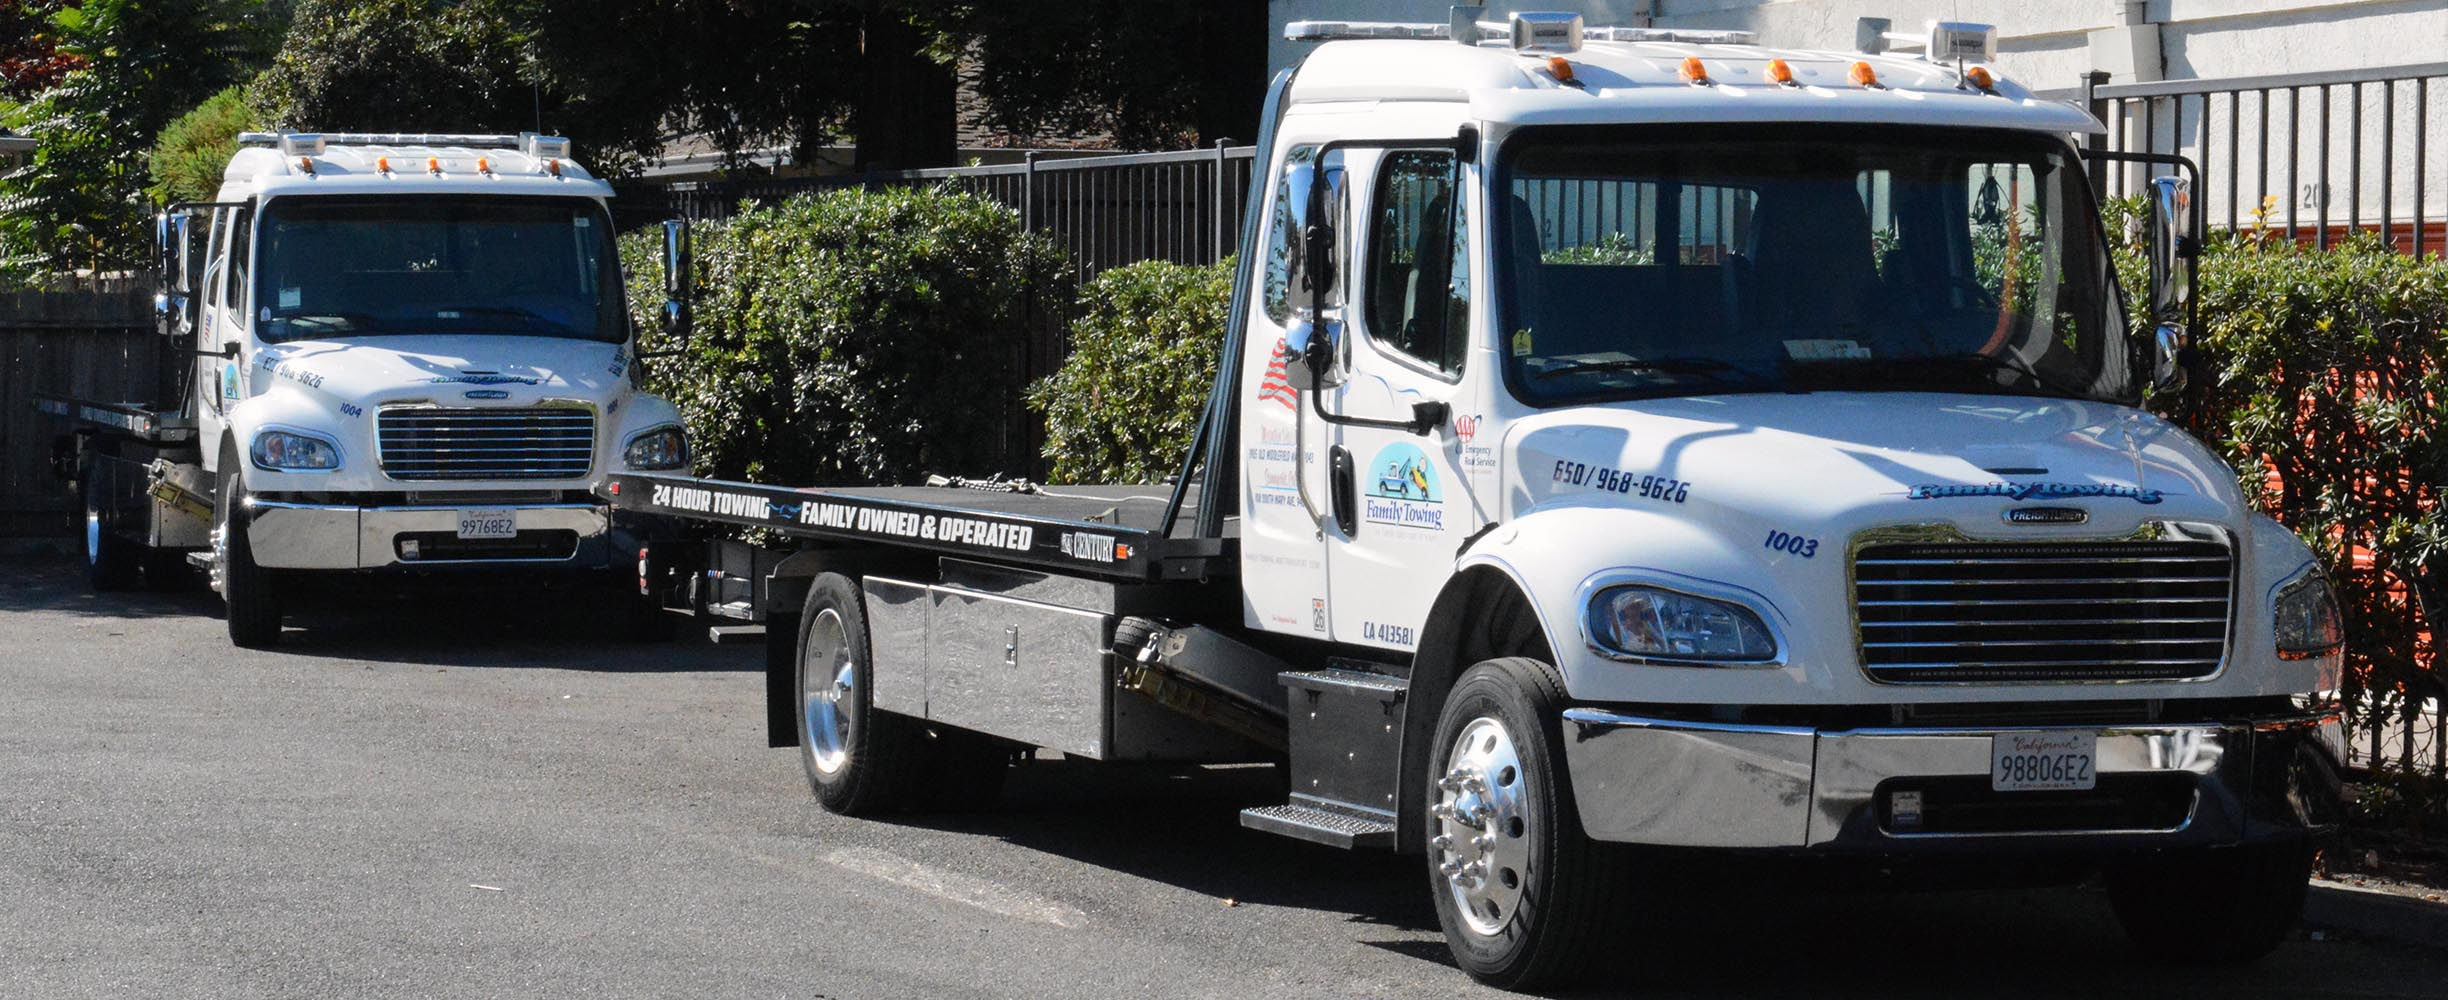 New towing truck fleet in Mountain viewe servicing the San Francisco Peninsula.